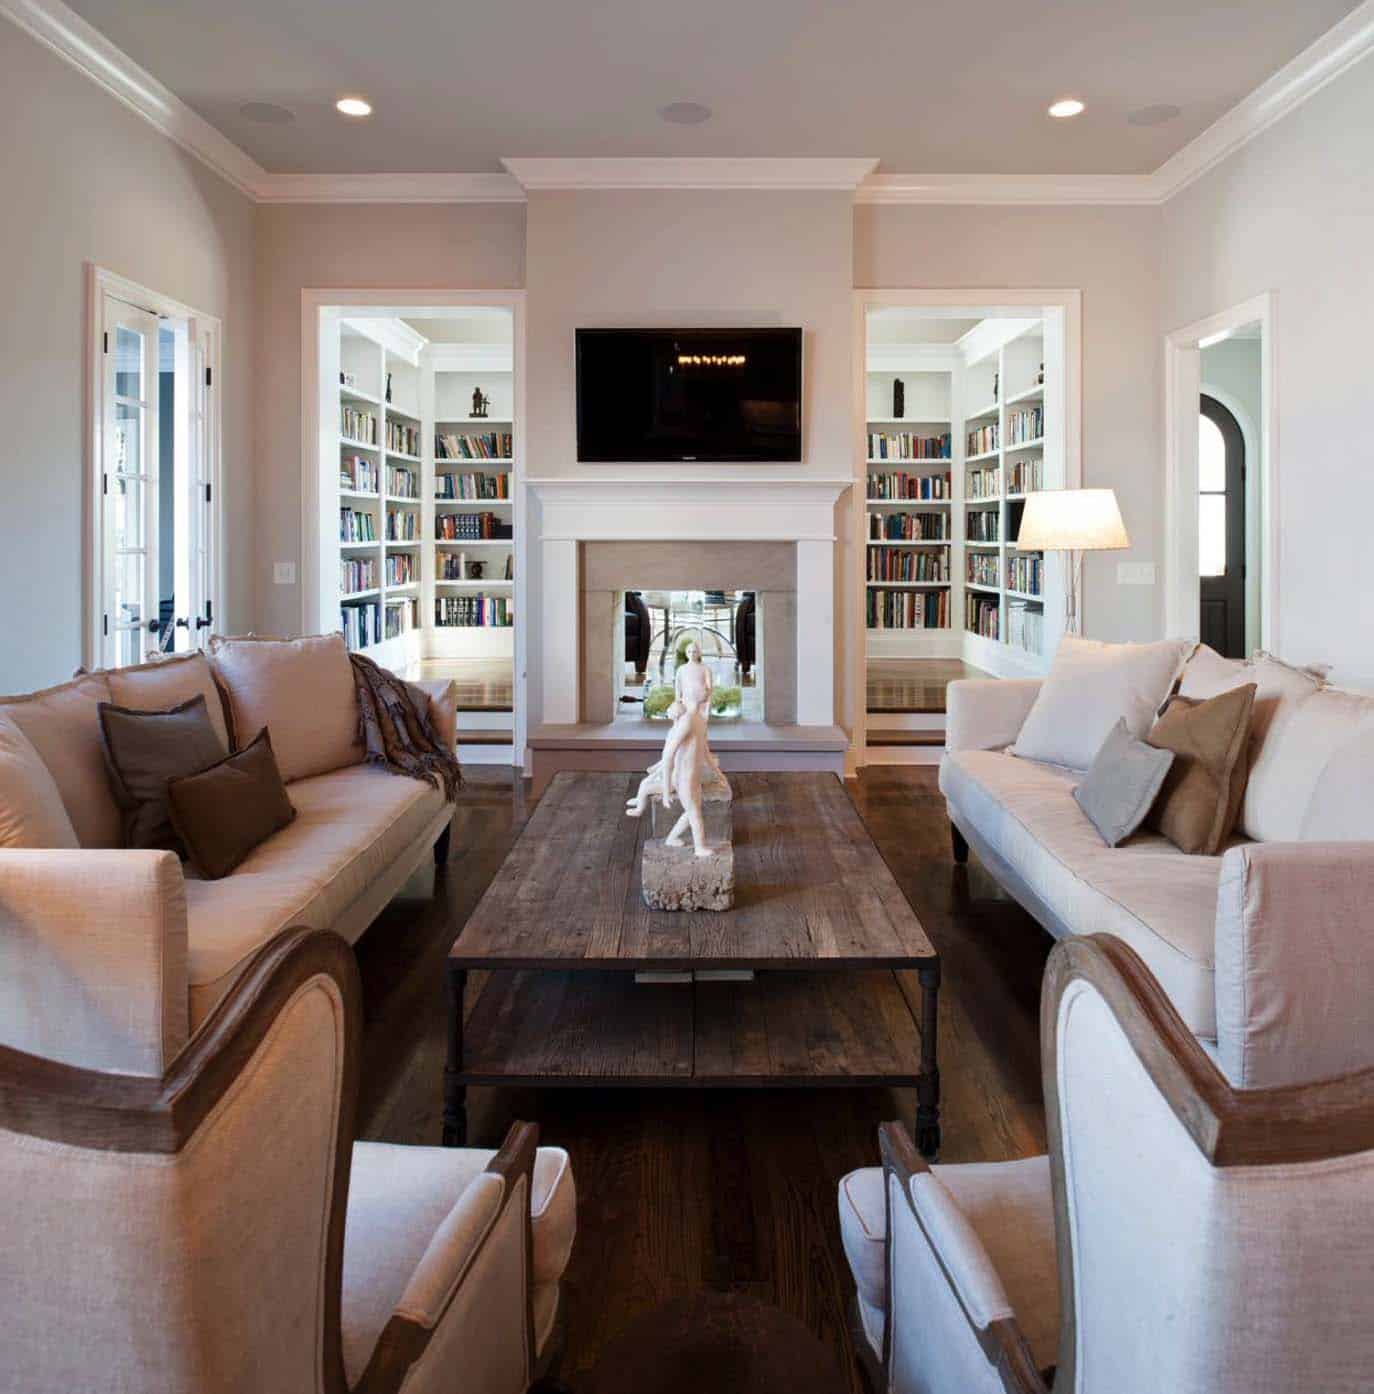 elegant living room decorating ideas floral chairs 38 rooms that are brilliantly designed 32 1 kindesign